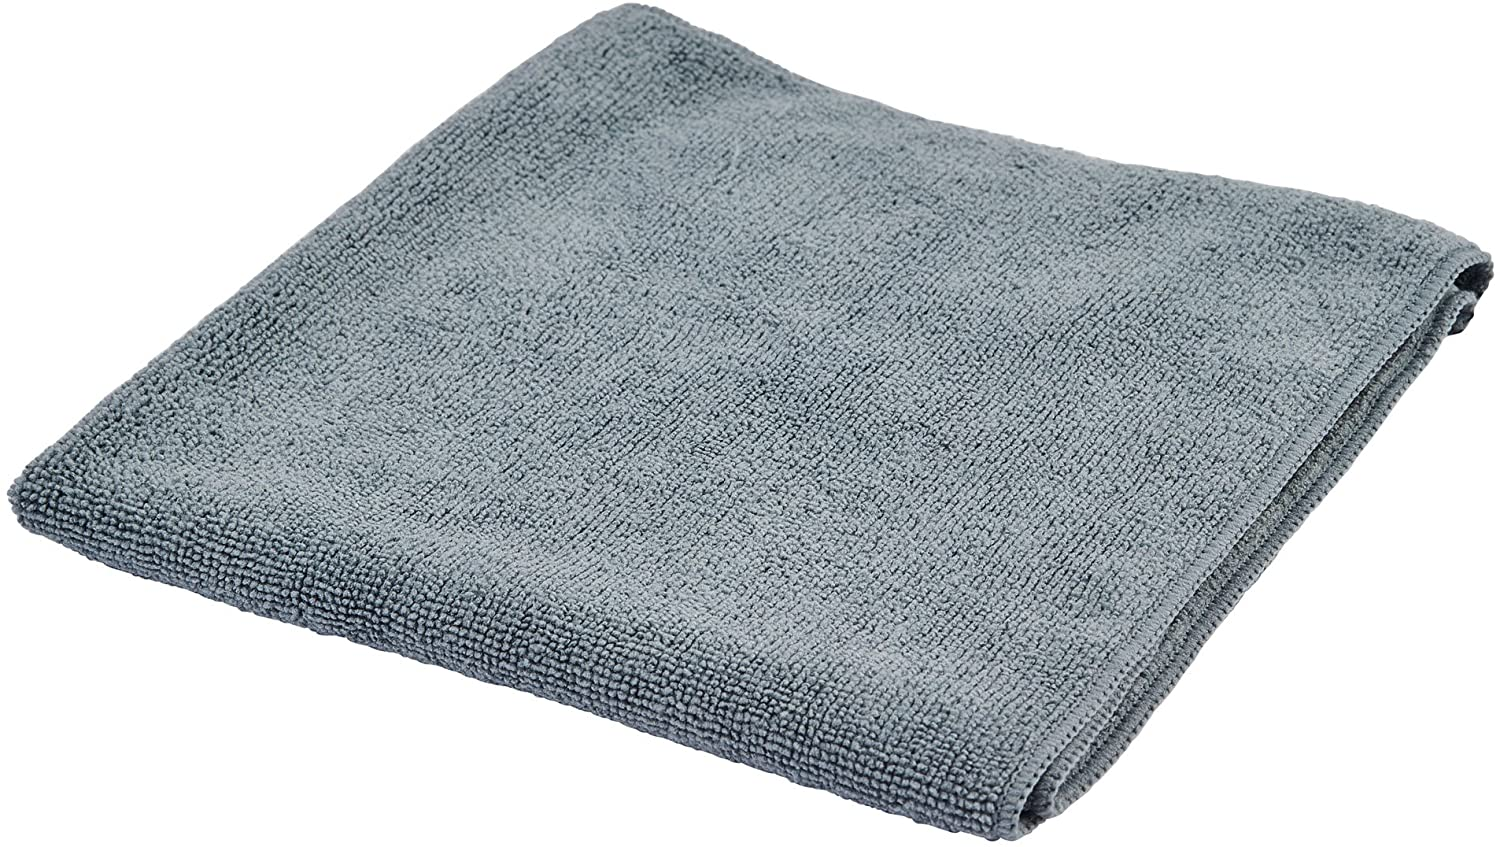 Gtechniq MF1 ZeroR Buff Microfibre Cloth